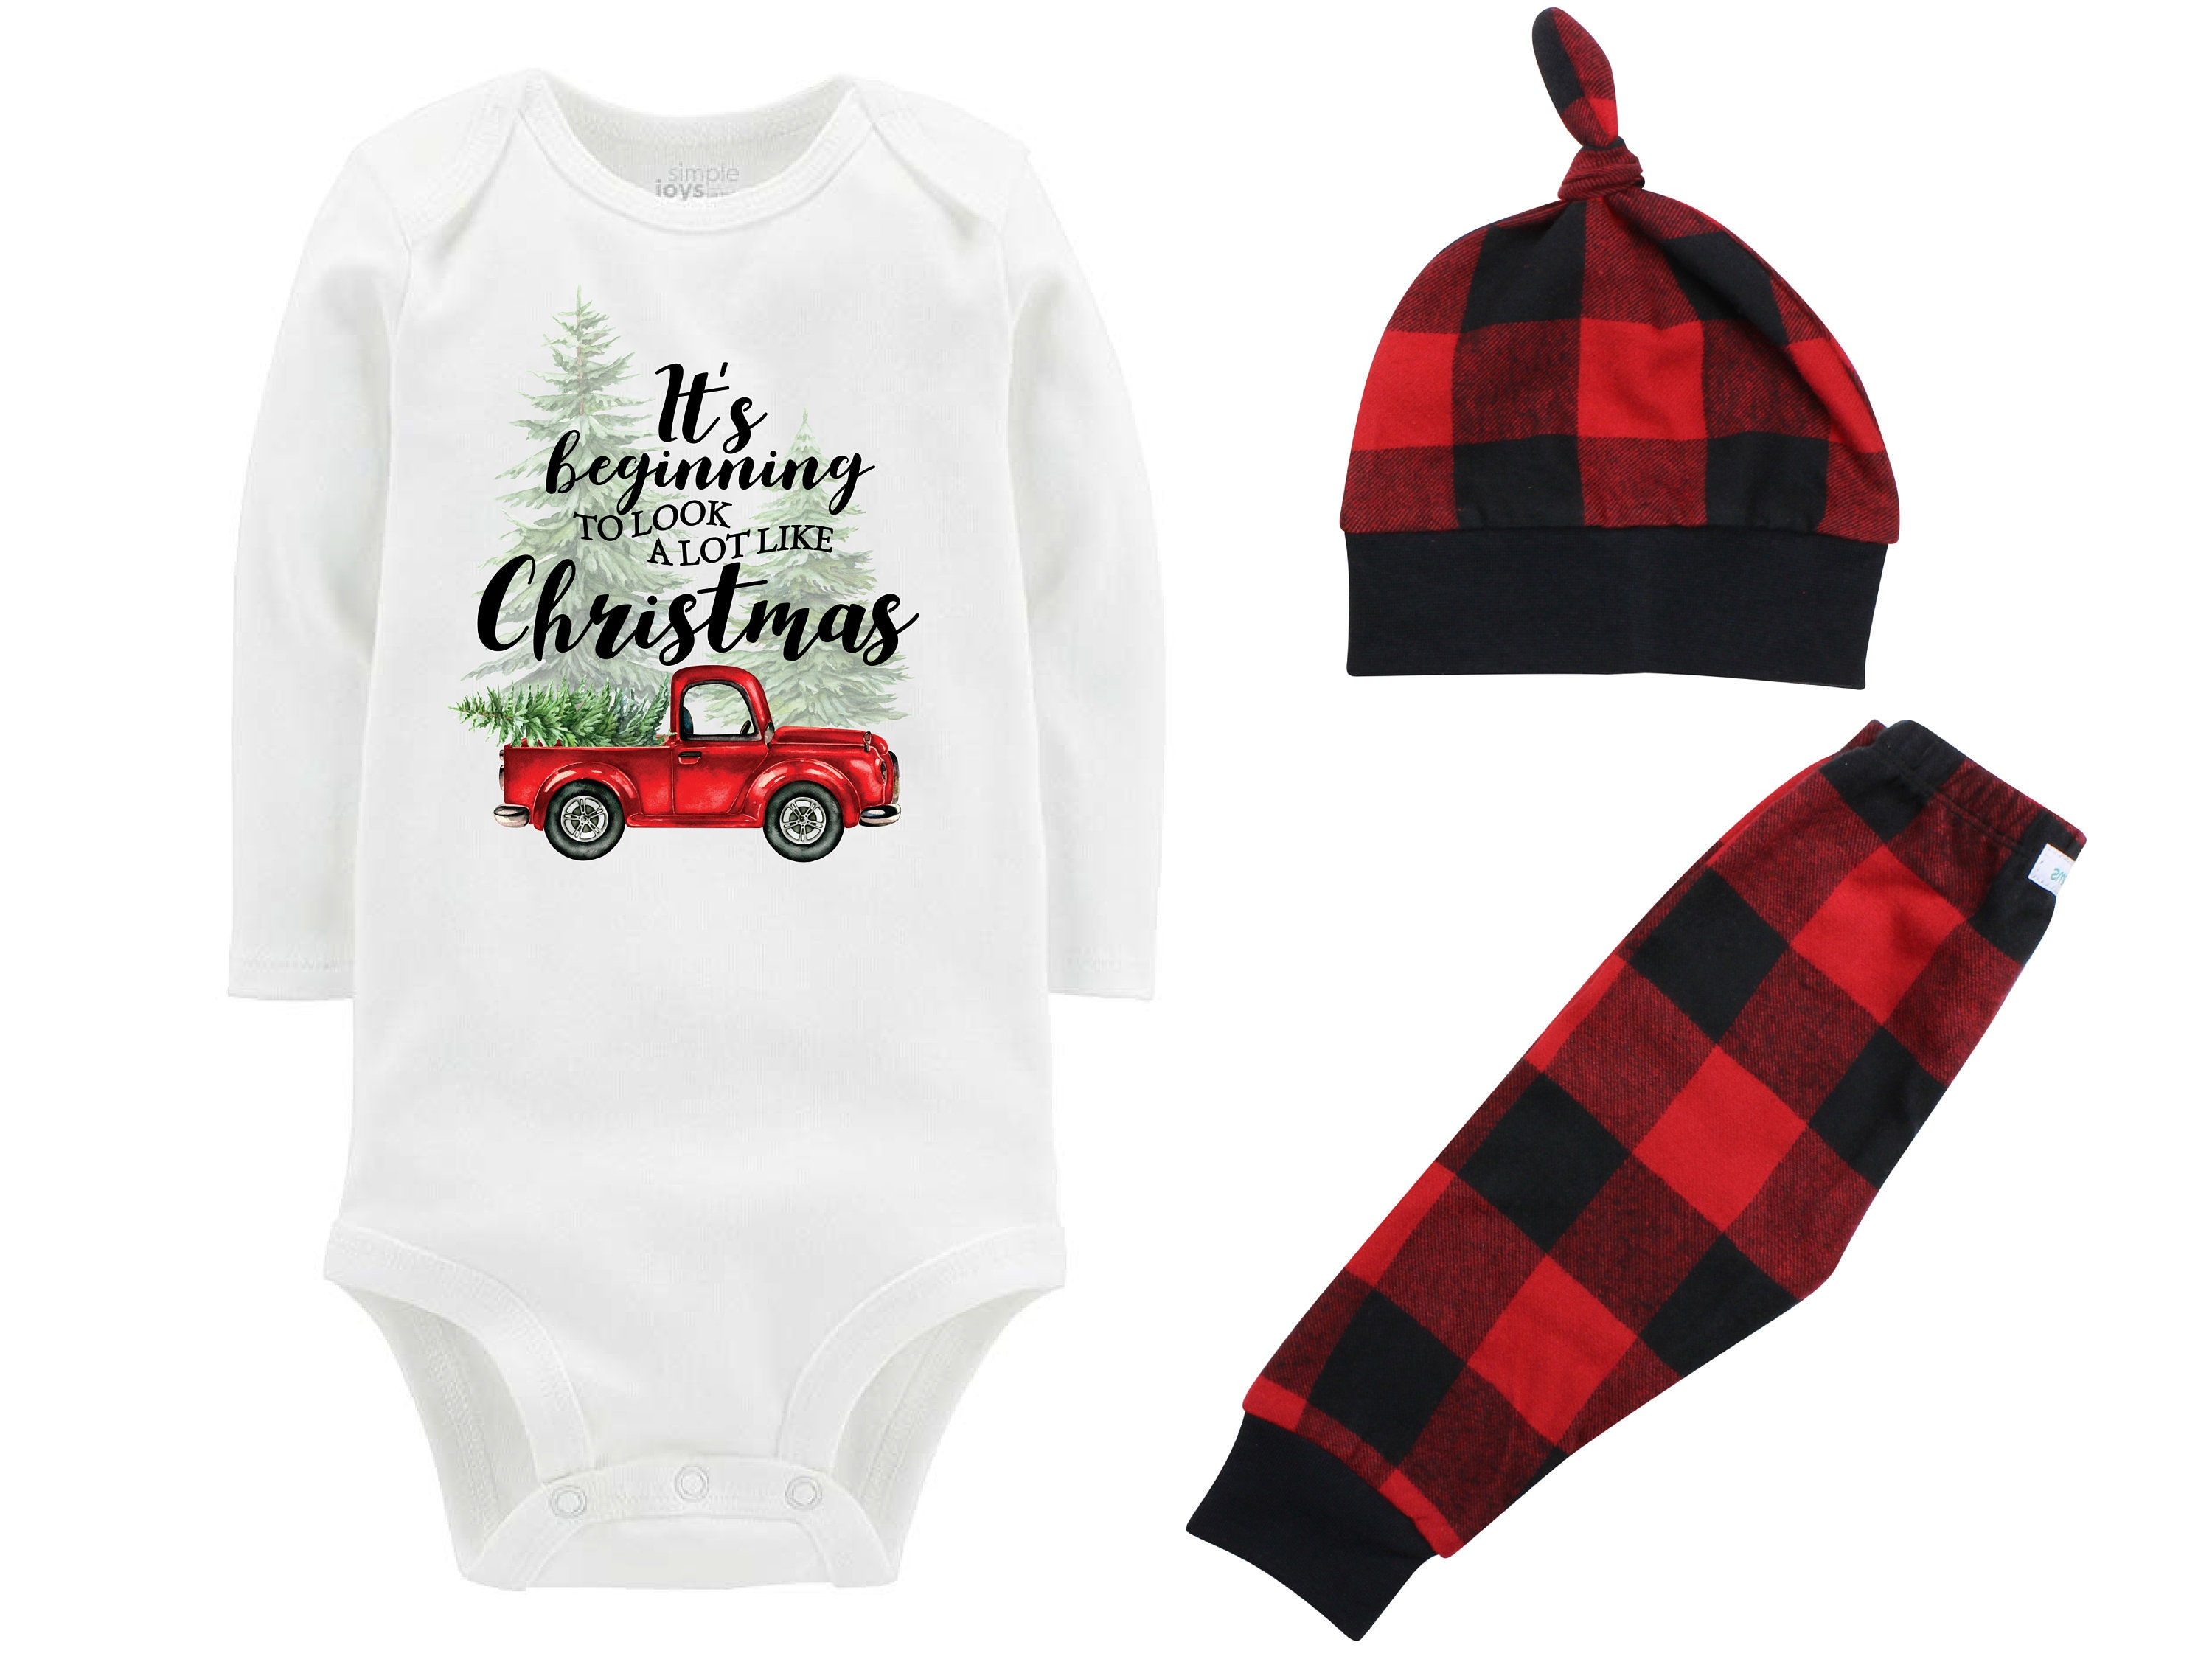 912a76436 ... Pants Winter Baby Outfit Boy Red Black Buffalo Plaid It's Beginning to  Look a lot Like Christmas. gallery photo ...